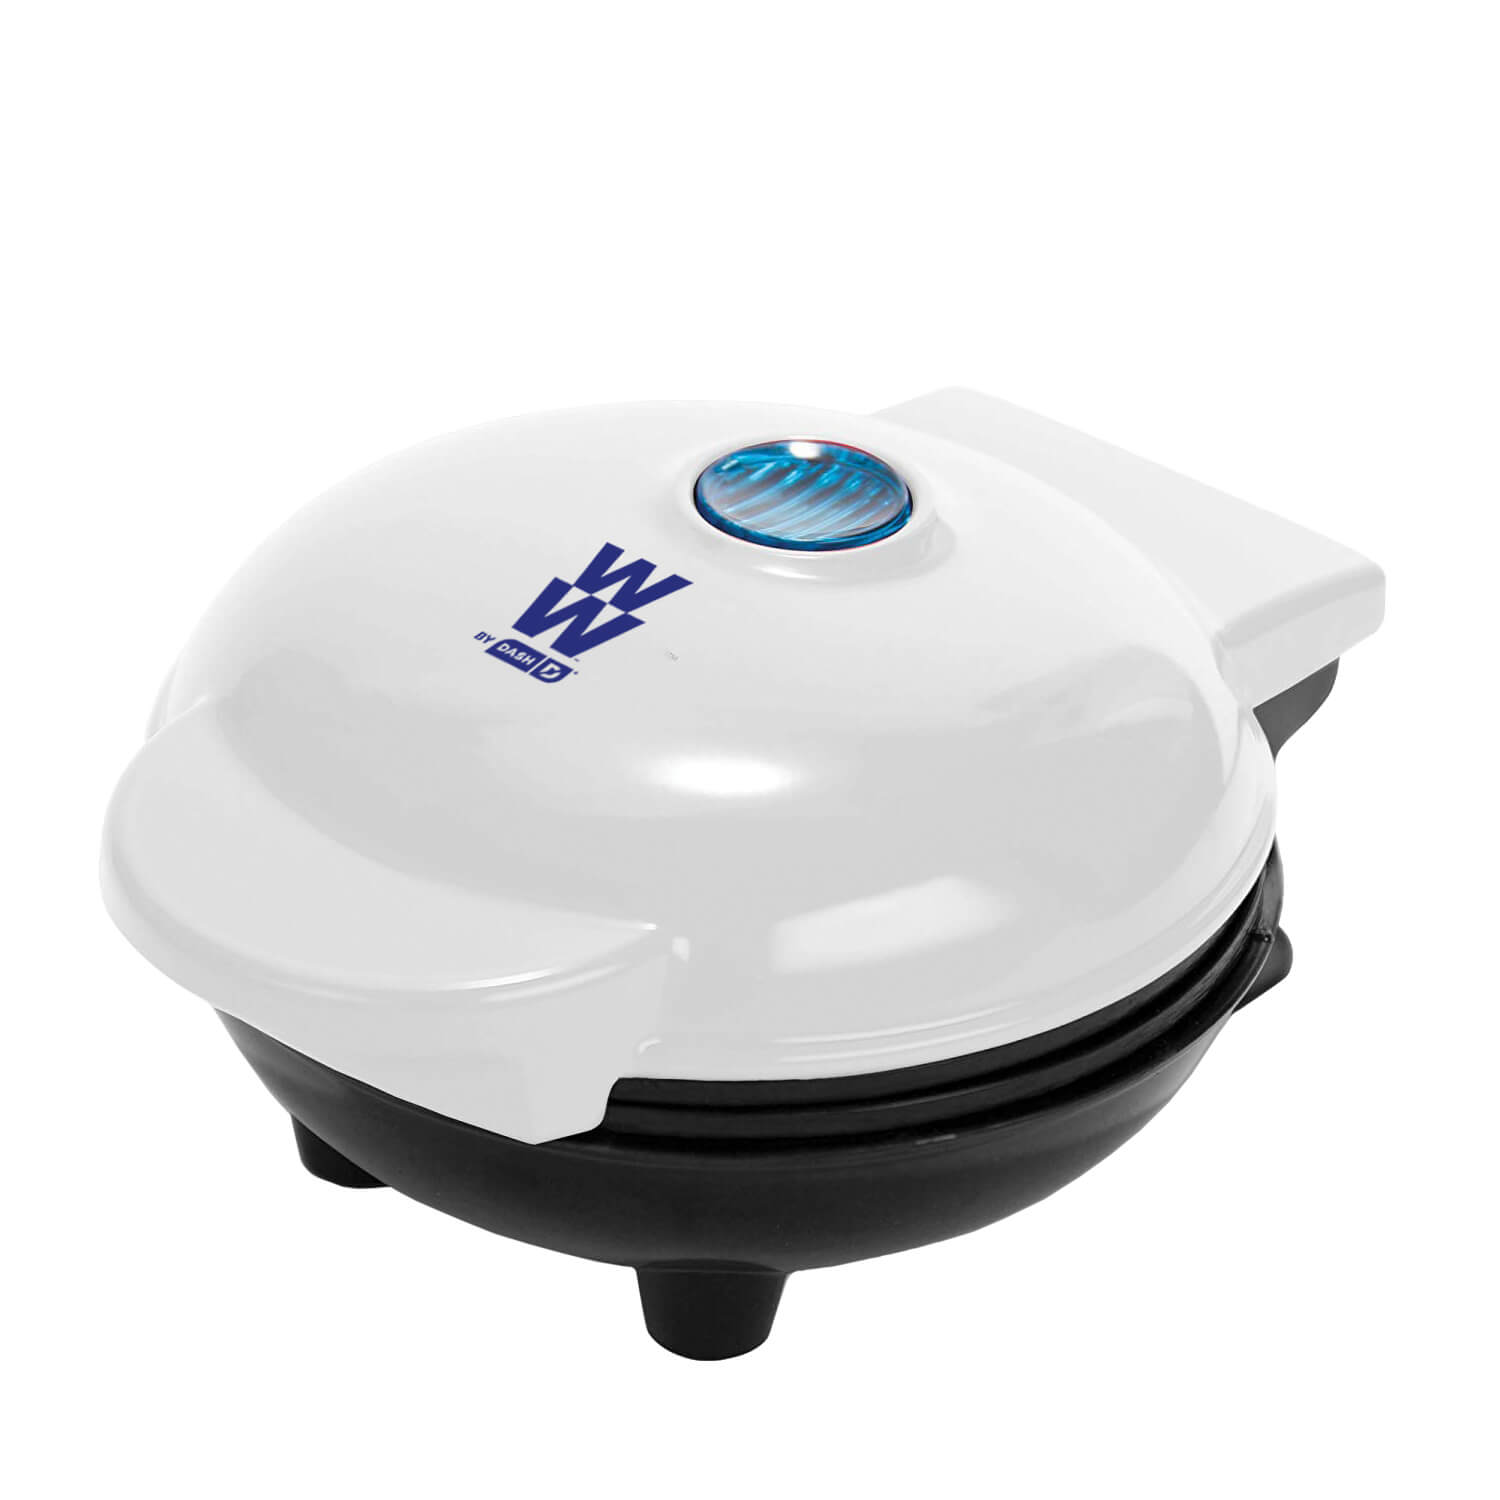 WW by Dash Mini Waffle Maker